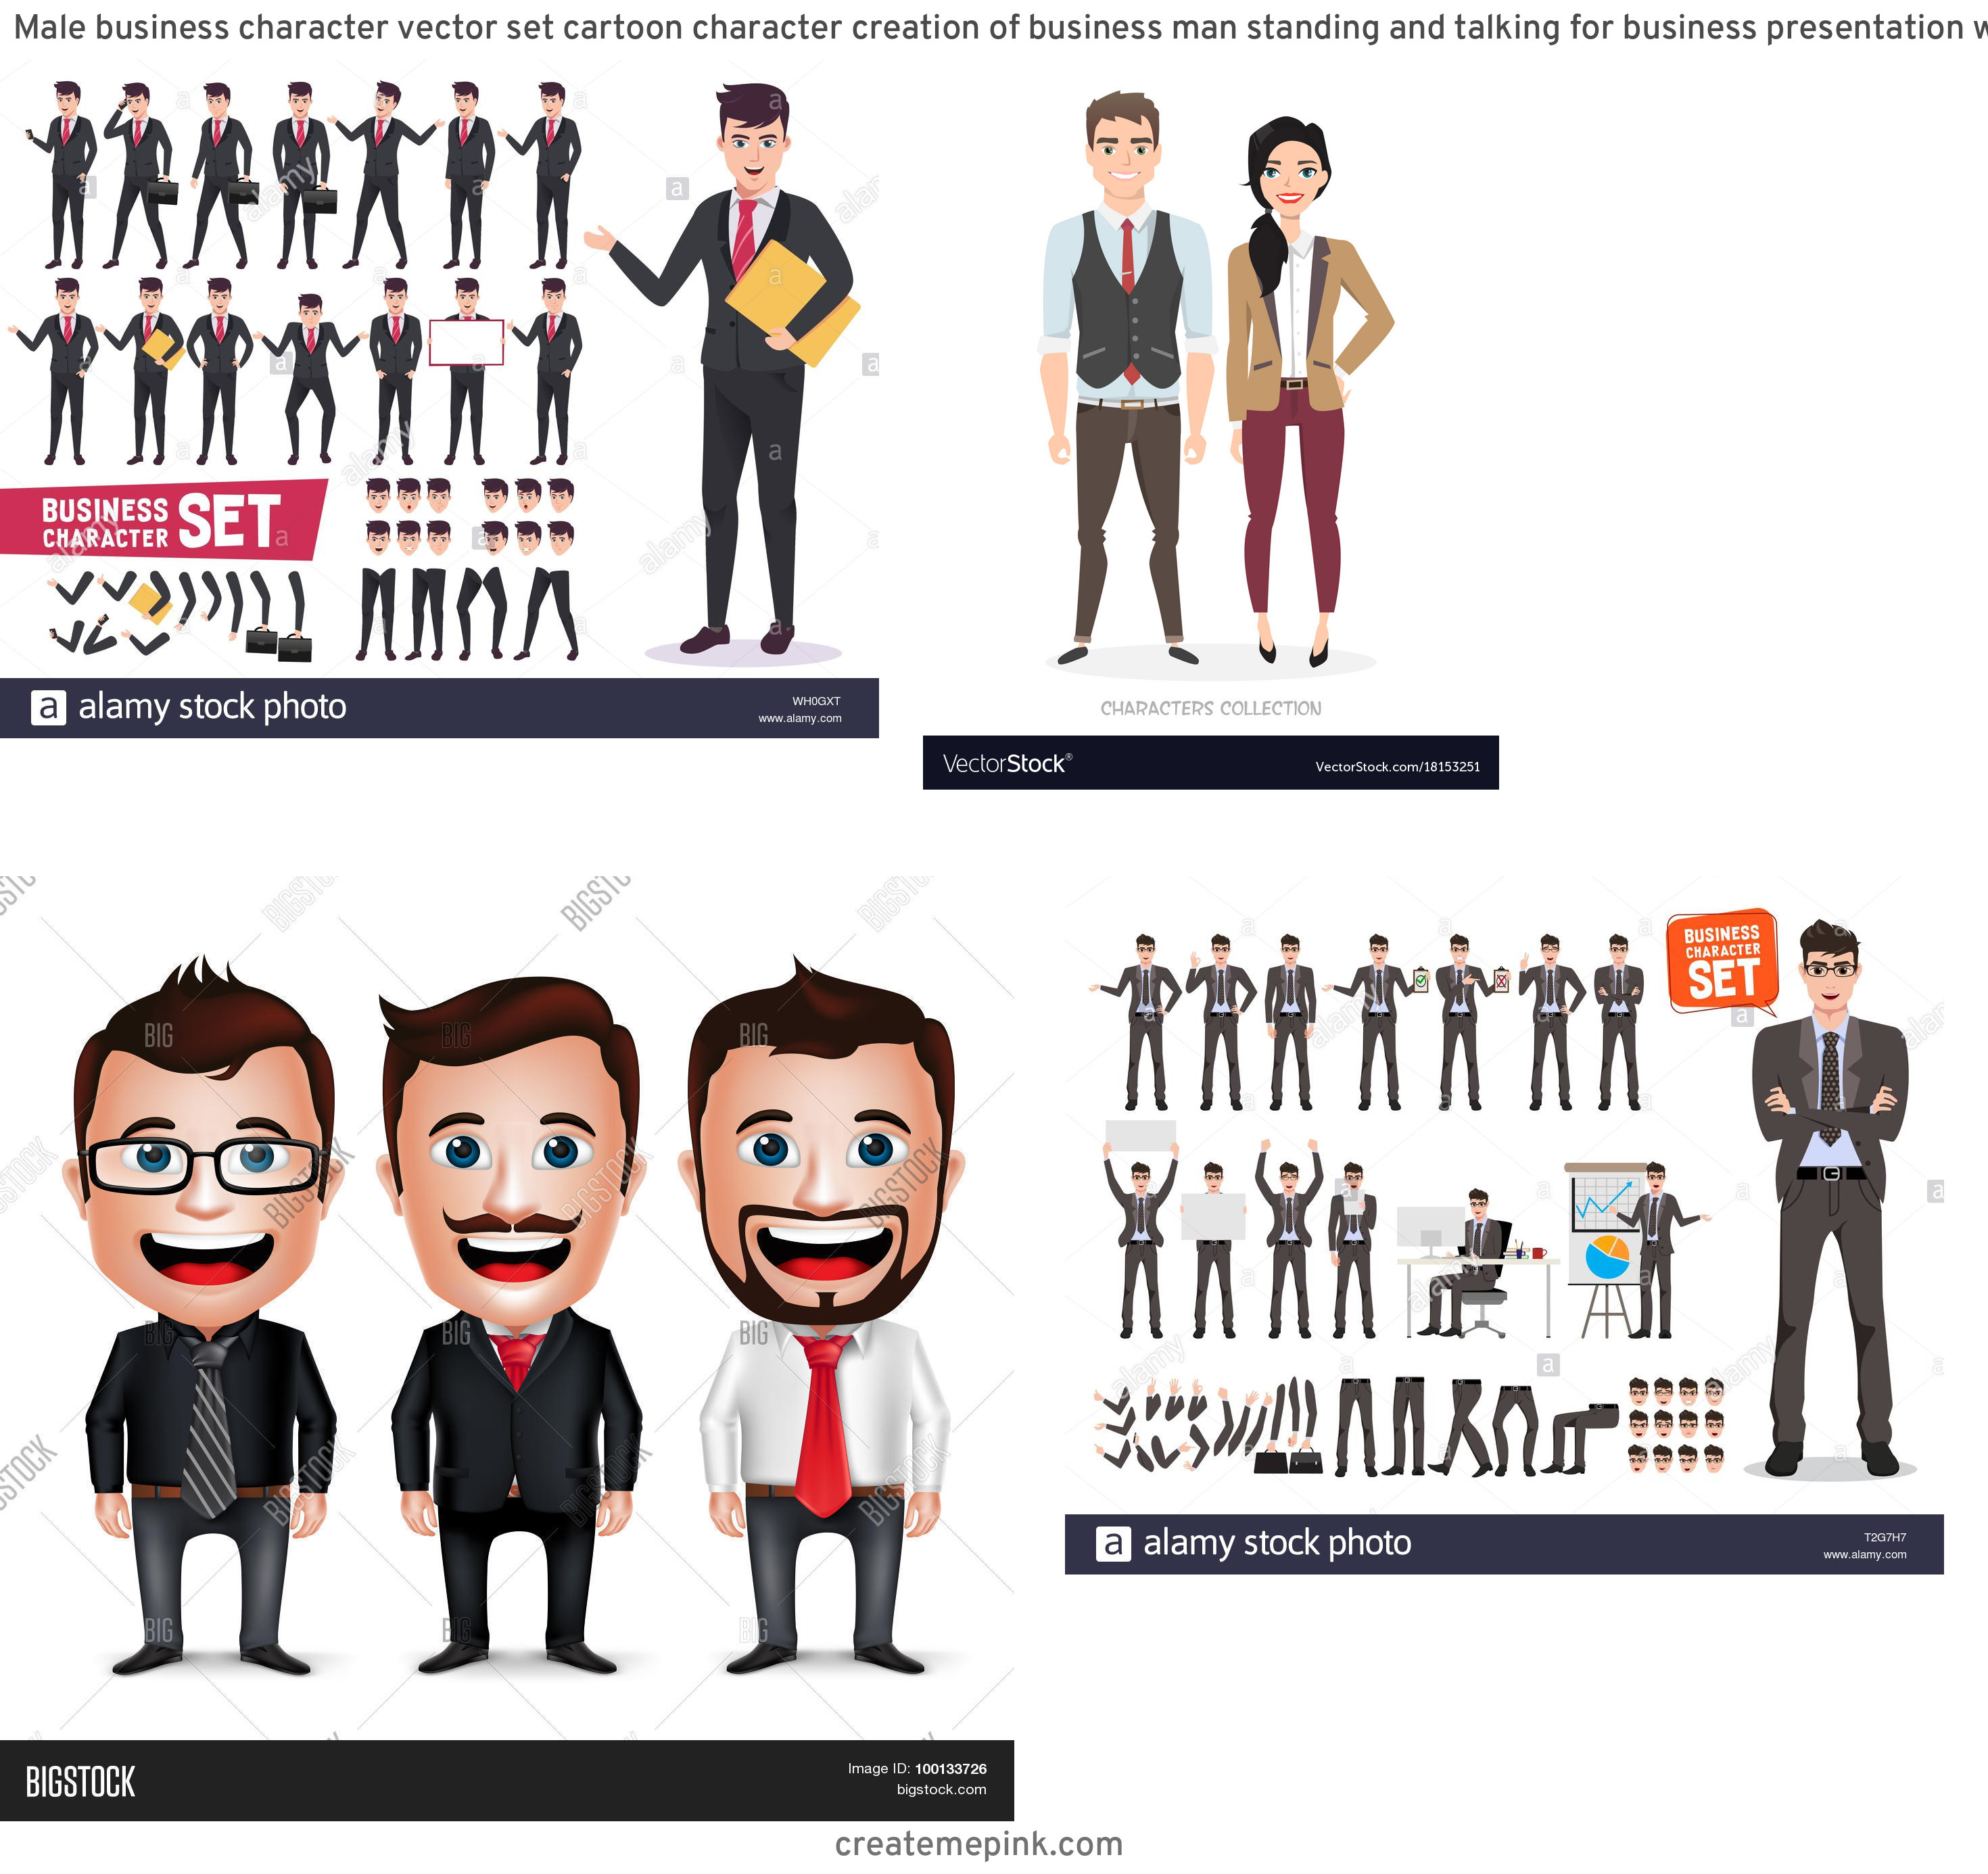 Vector Business Attire: Male Business Character Vector Set Cartoon Character Creation Of Business Man Standing And Talking For Business Presentation Wearing Office Attire Image